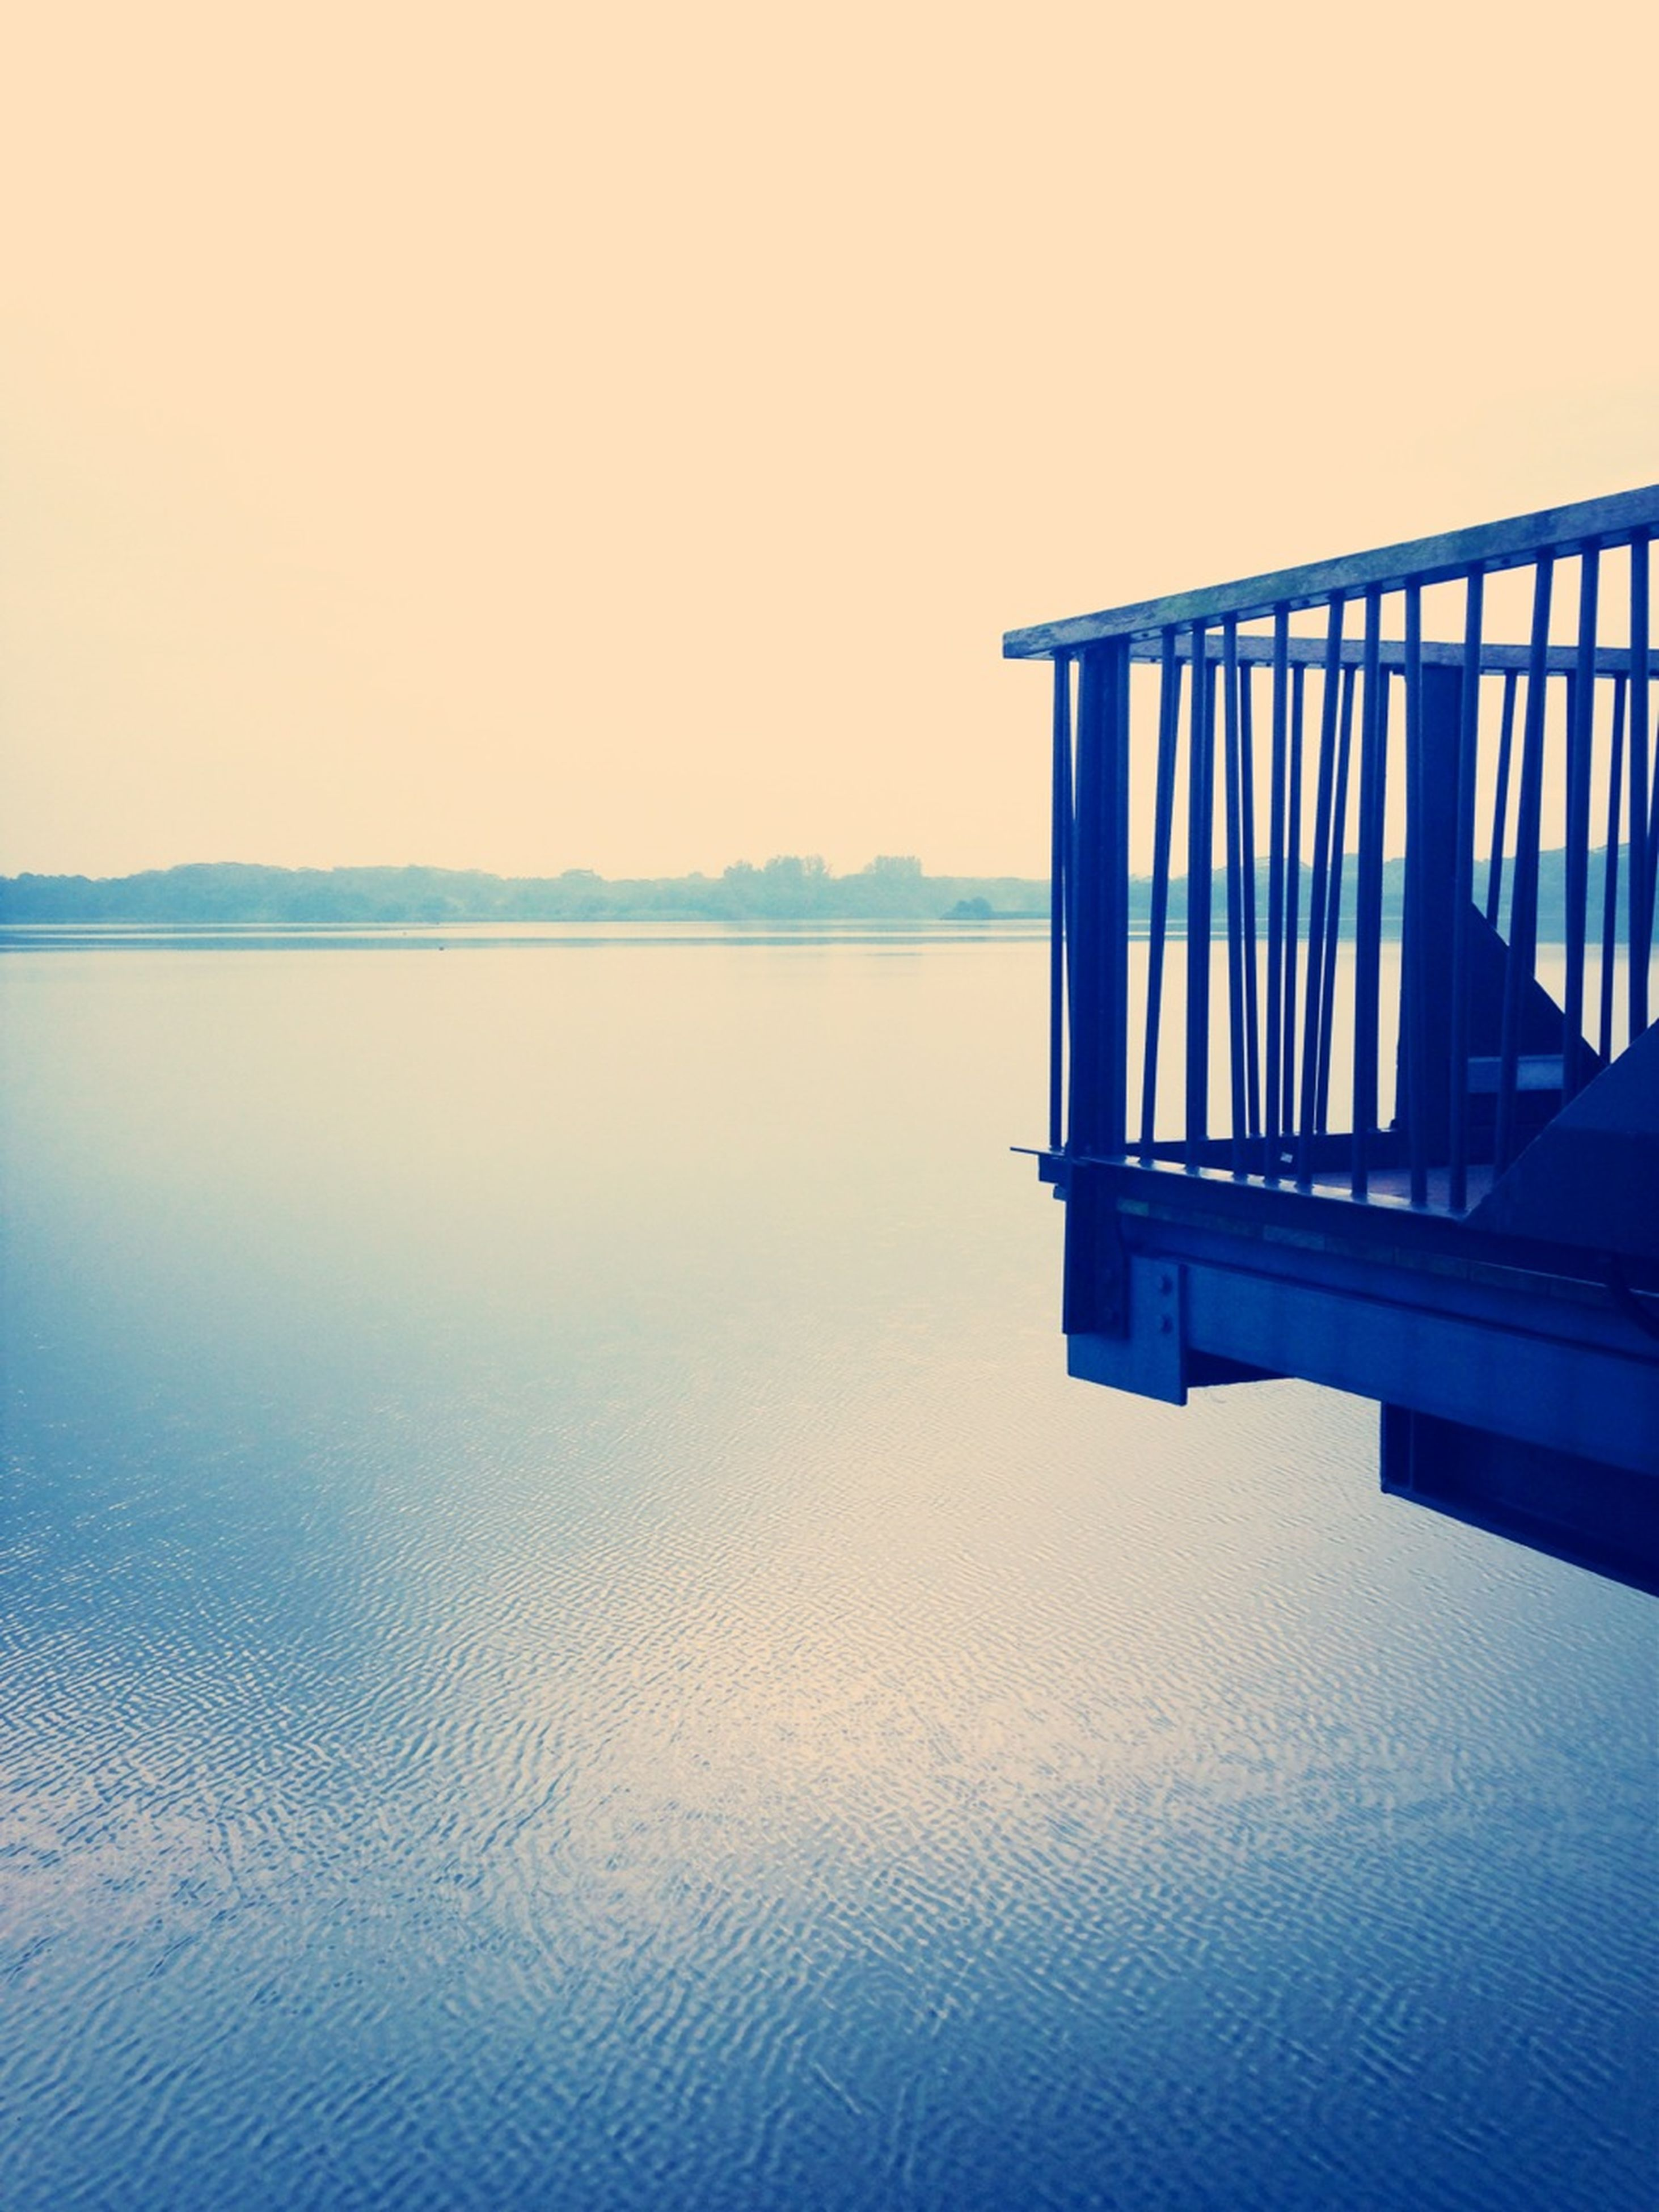 water, clear sky, tranquility, tranquil scene, built structure, lake, scenics, copy space, reflection, architecture, beauty in nature, nature, sea, waterfront, calm, pier, sky, idyllic, blue, no people